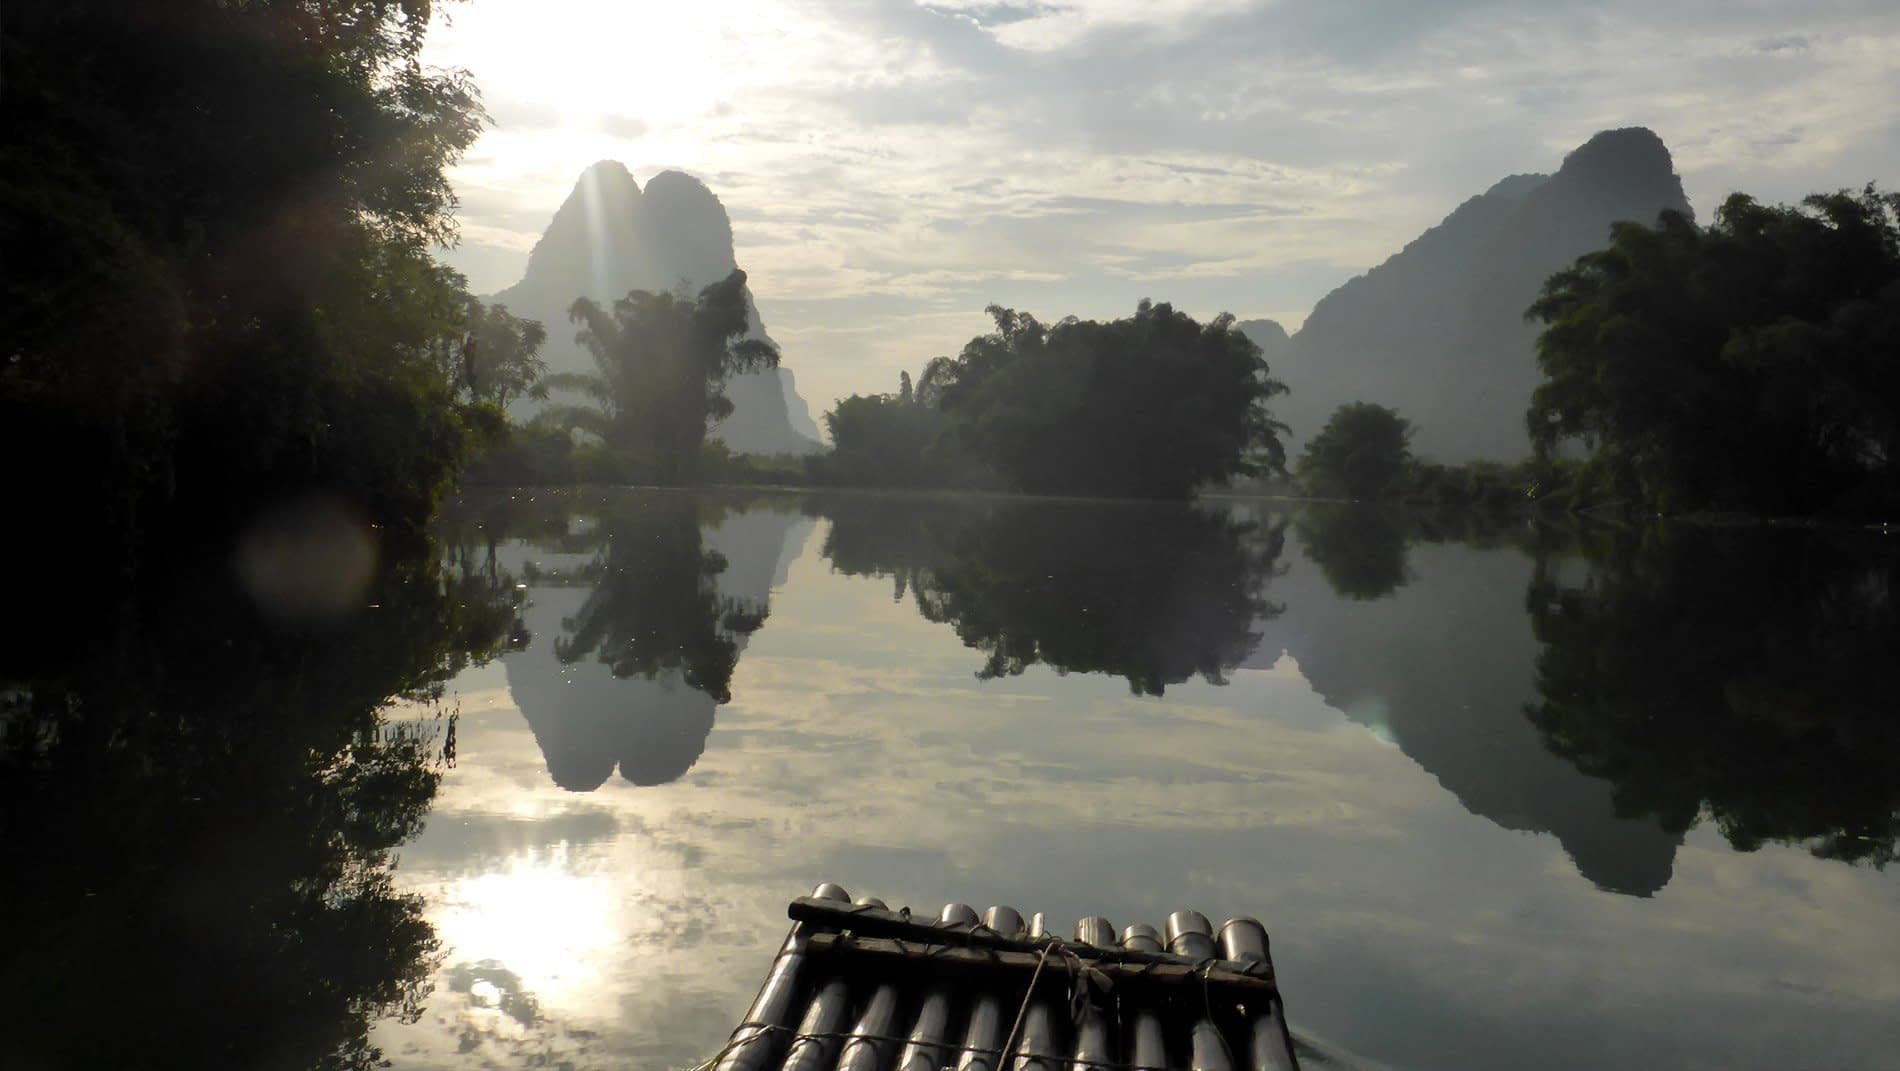 Li River~Feel your cares drift away with the current as you are punted along the river though the stunning karst landscape. Children run to school along the river bank, villagers collect clumps of reeds to weave into mats, farmers hide from the sun under thatched shelters on their adjacent fields.